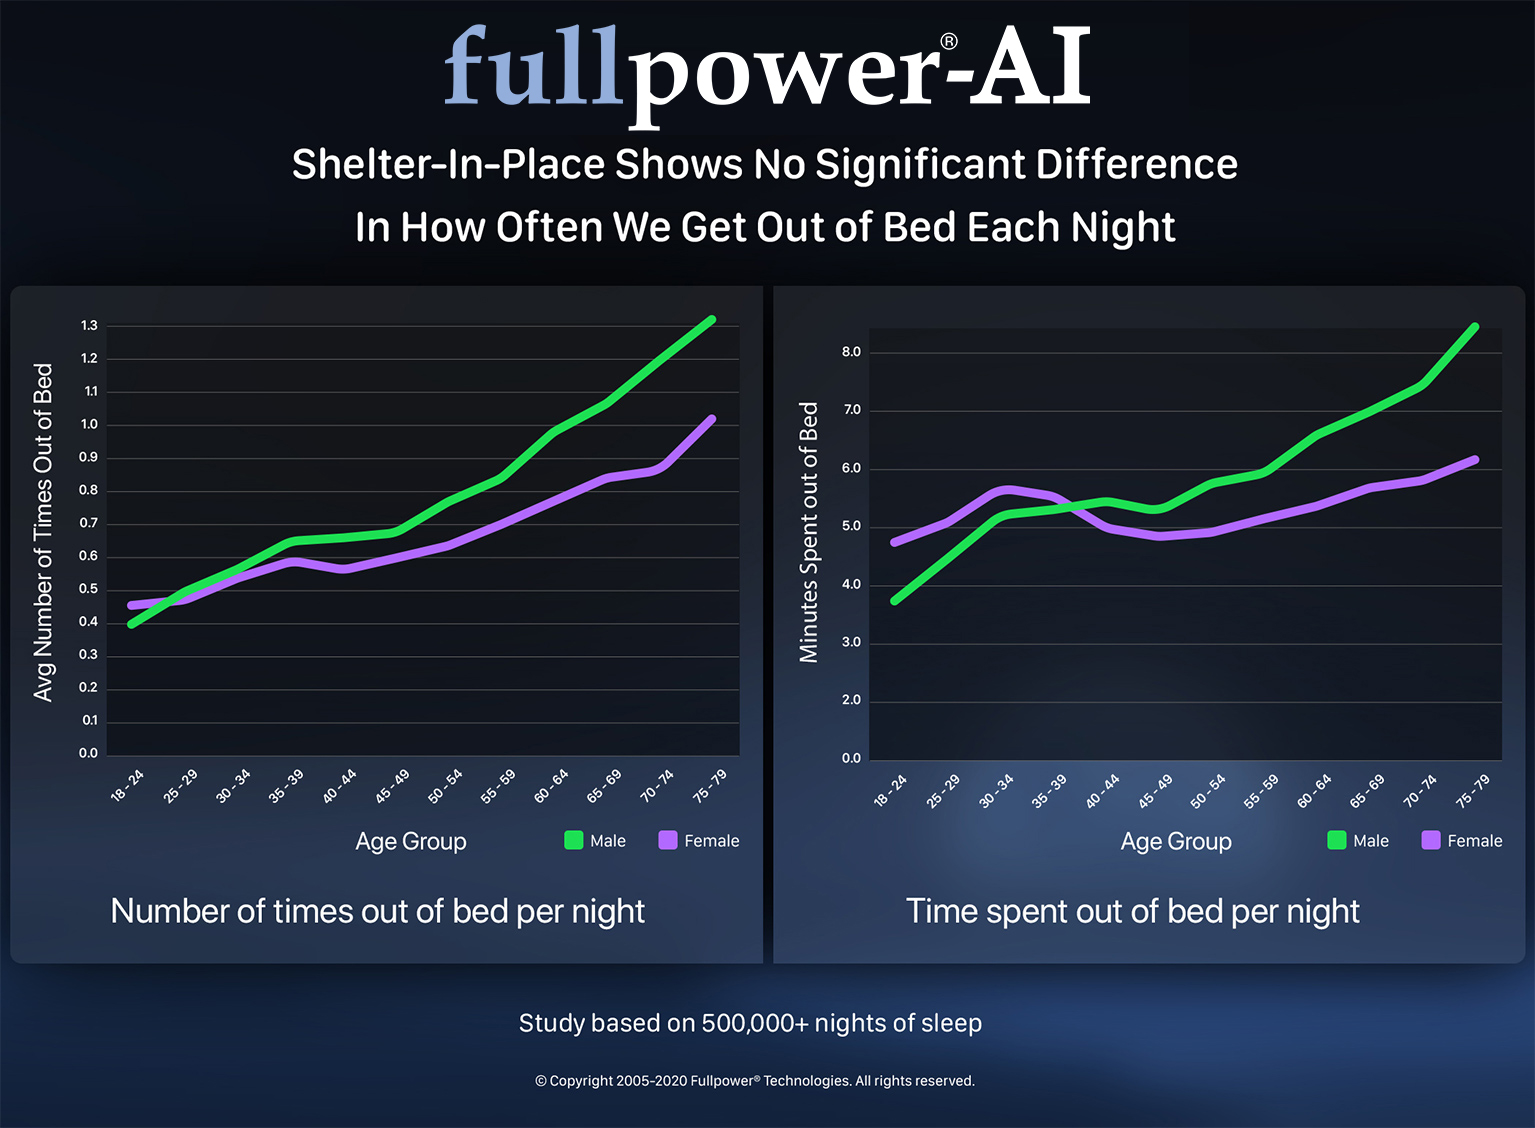 Shelter-in-Place Shows No Significant Difference In How Often We Get Out of Bed Each Night